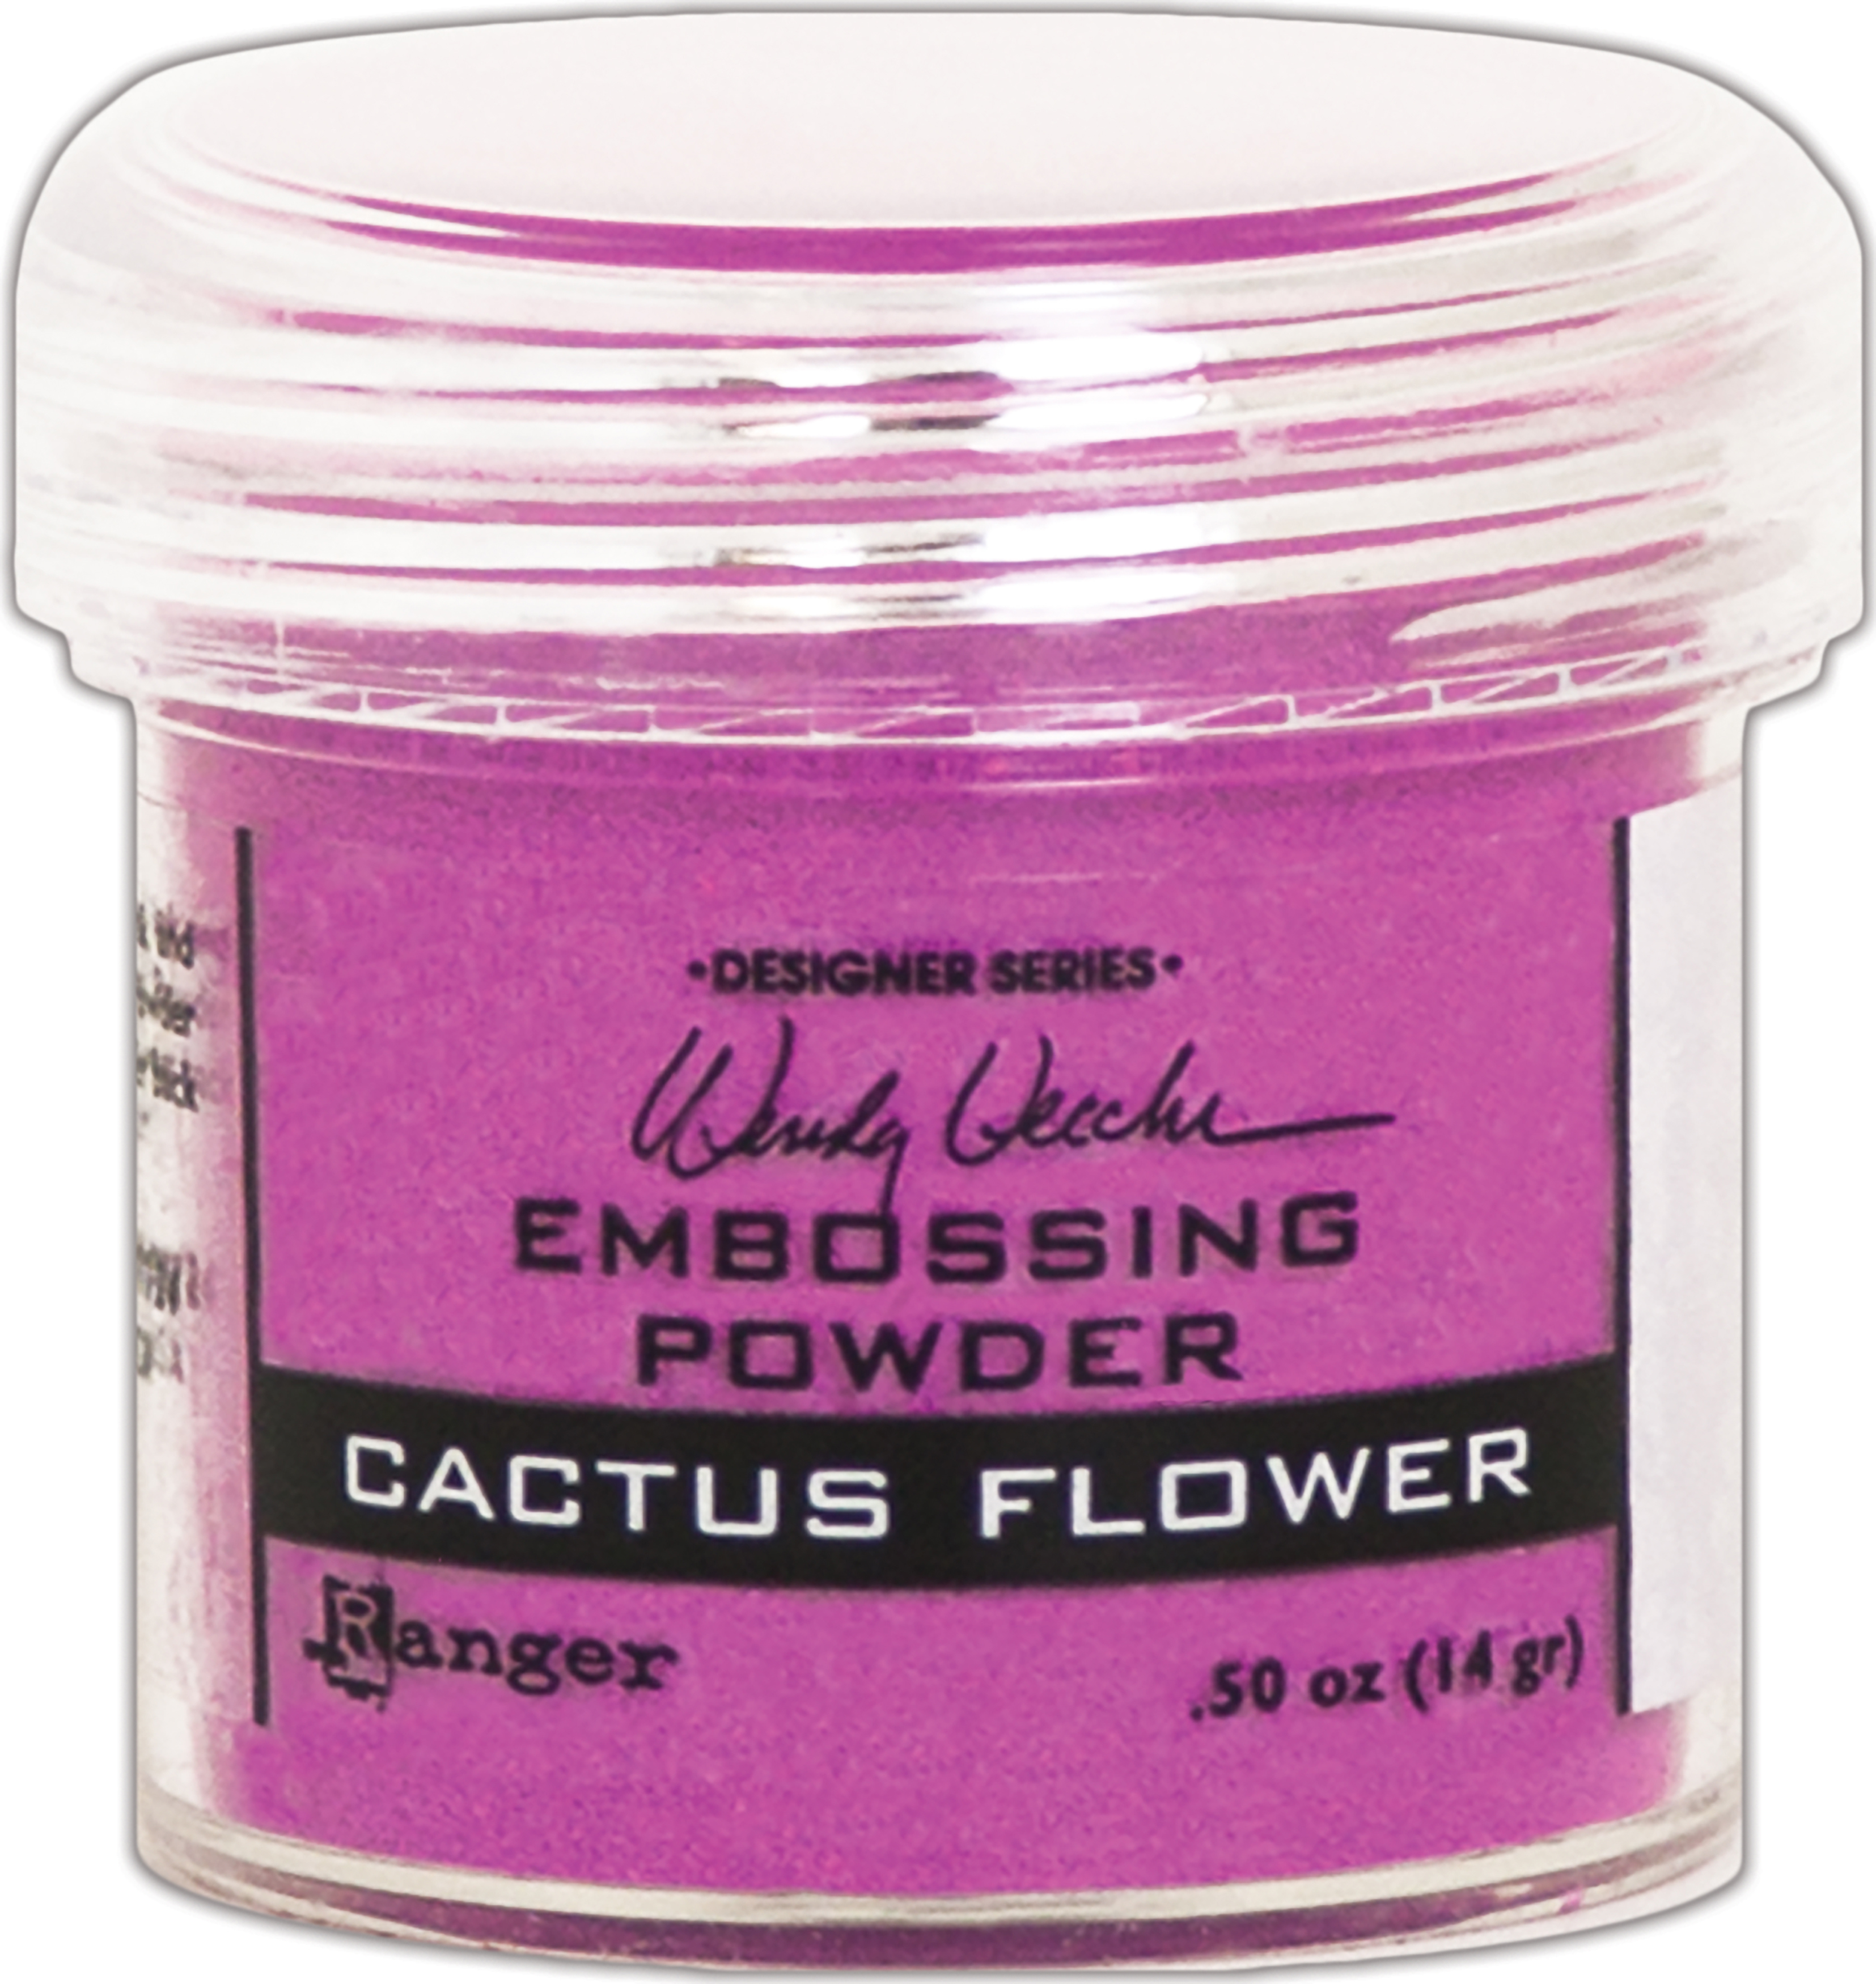 CACTUS FLOWER - EMBOSSING POWDER